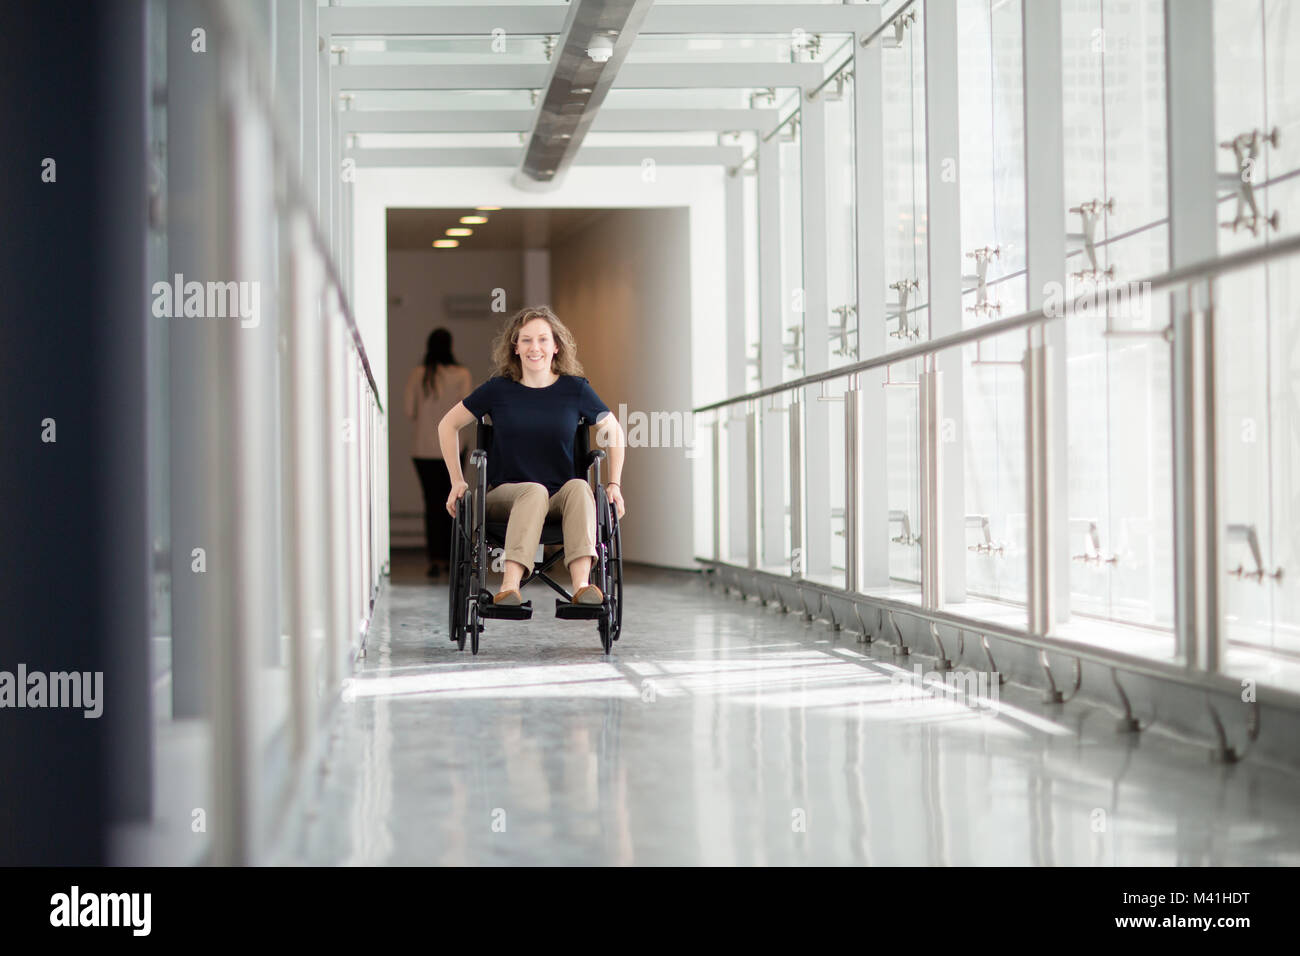 Disabled businesswoman on her way to work - Stock Image